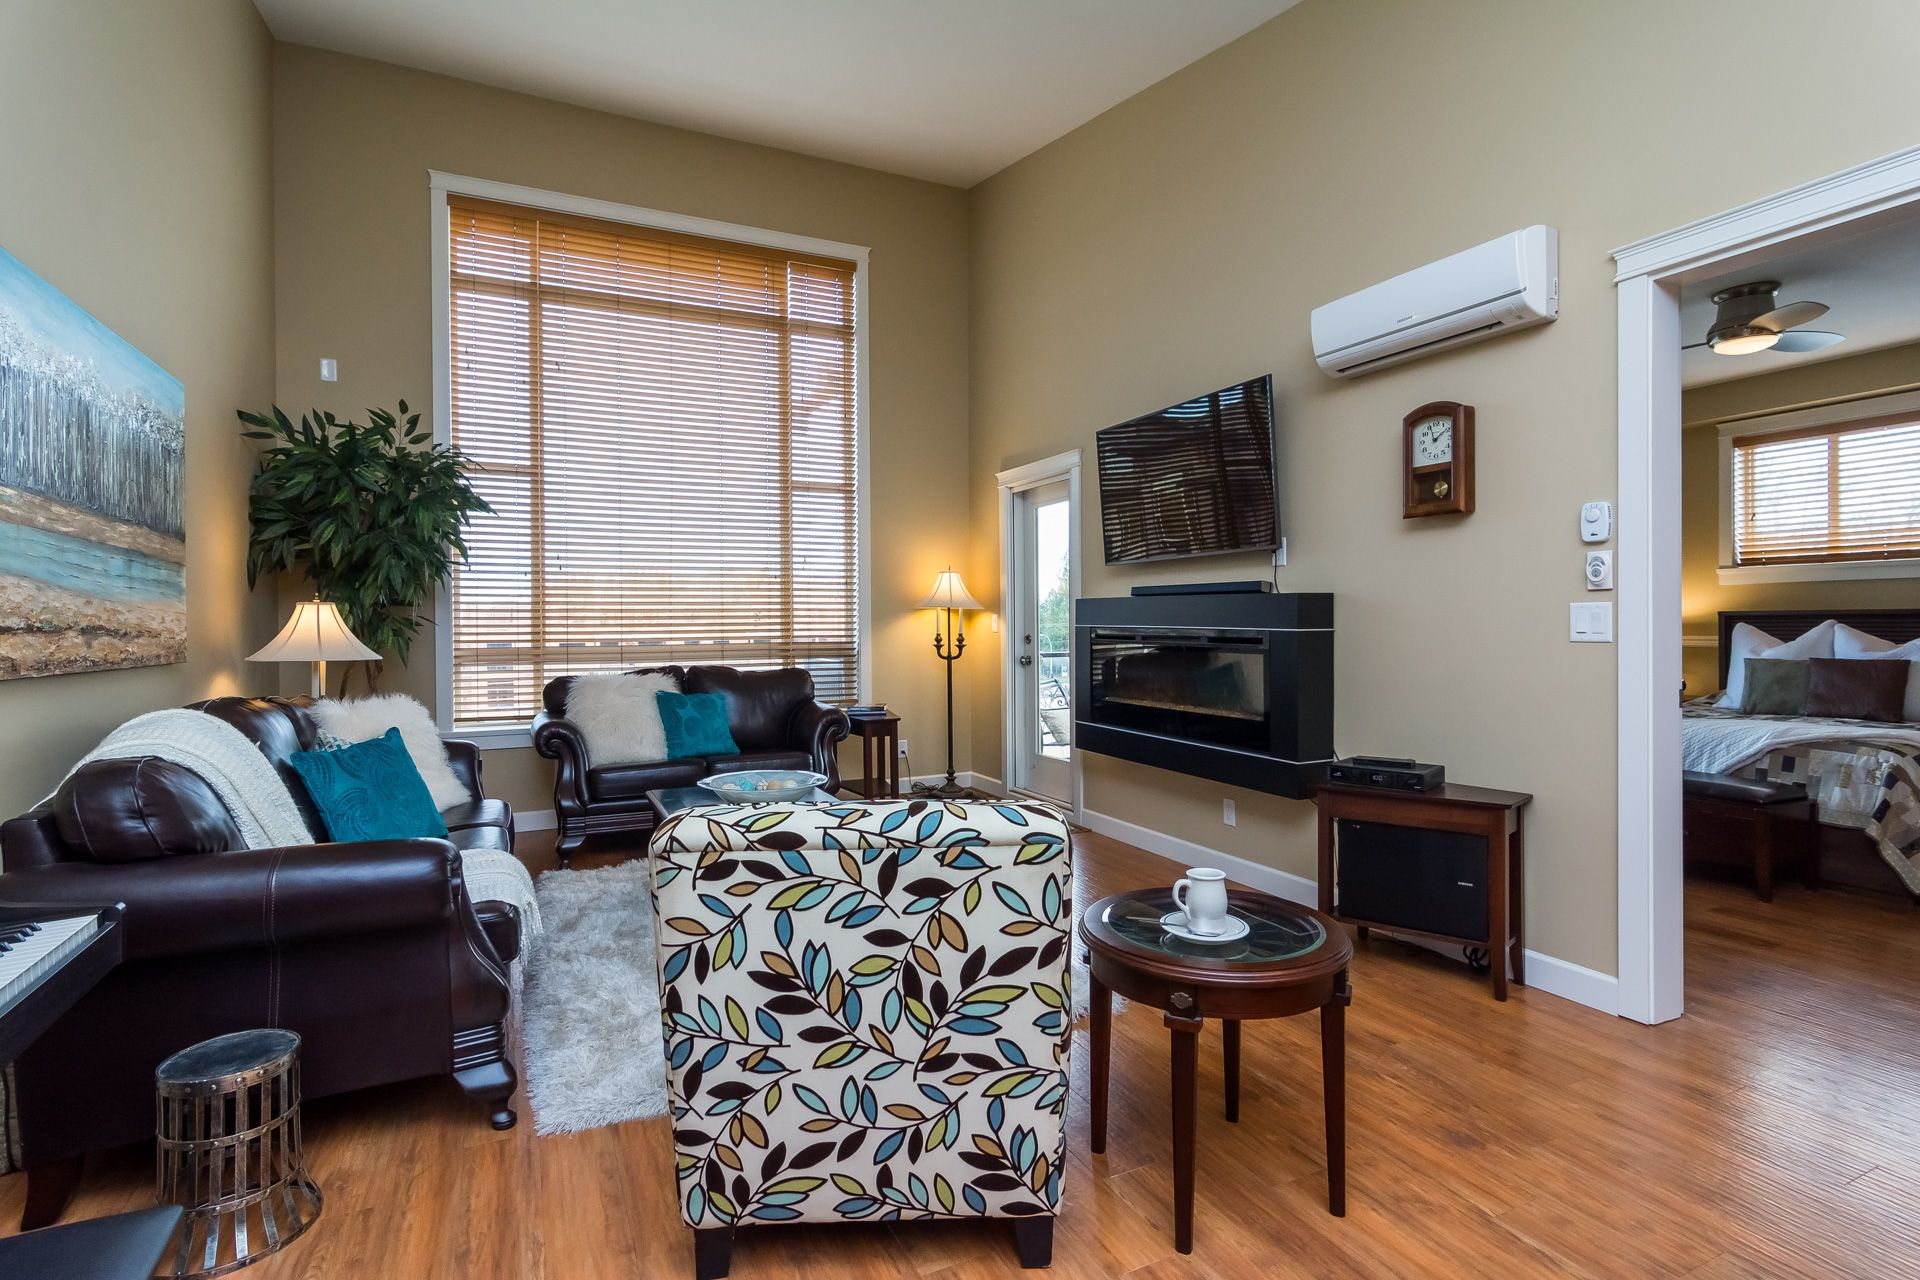 """Photo 6: Photos: 509 8258 207A Street in Langley: Willoughby Heights Condo for sale in """"YORKSON CREEK (BLG A)"""" : MLS®# R2221052"""